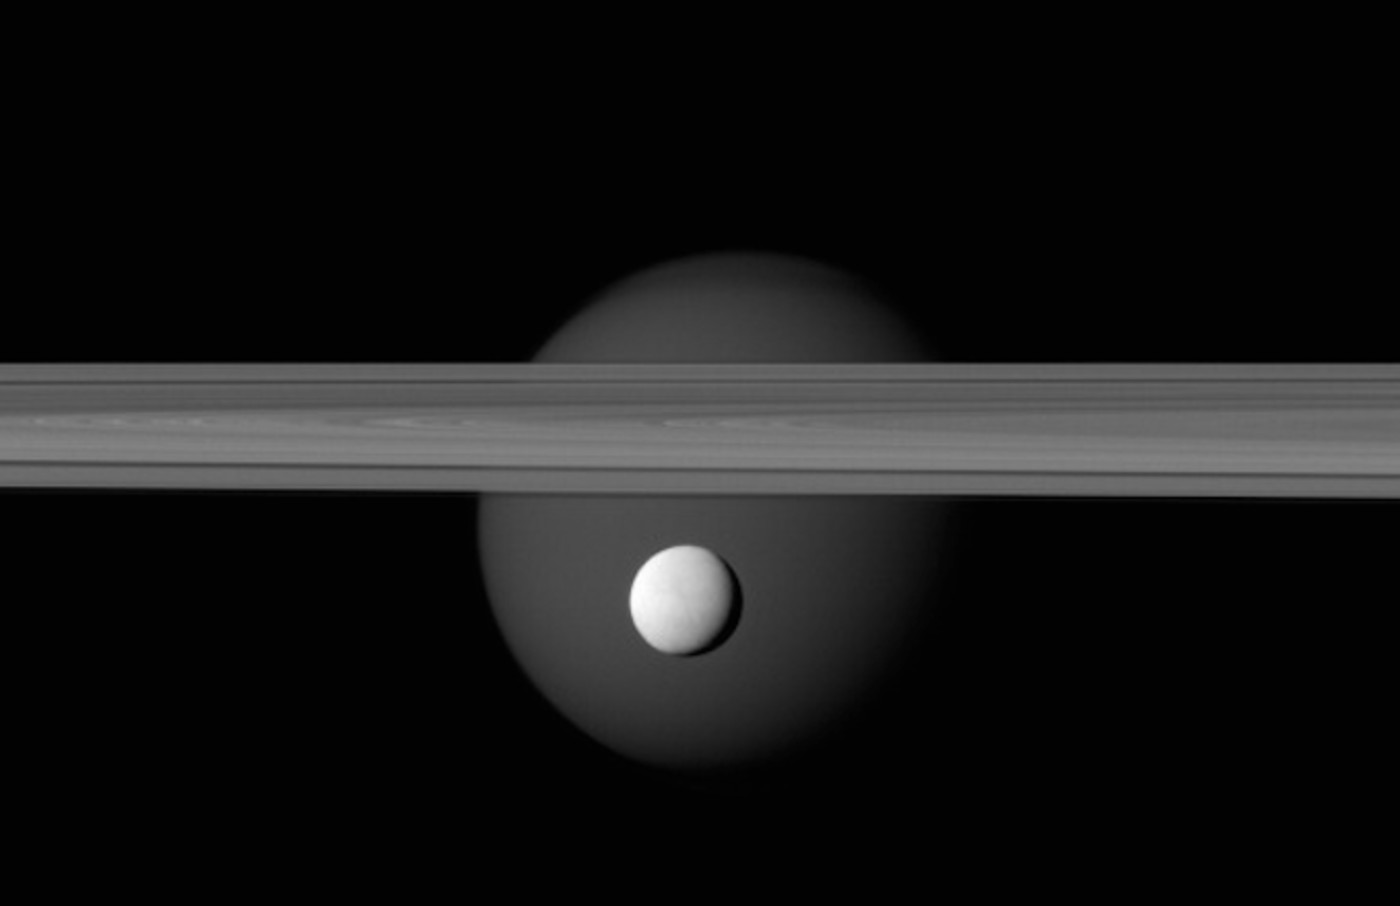 Enceladus appears before Saturn's rings